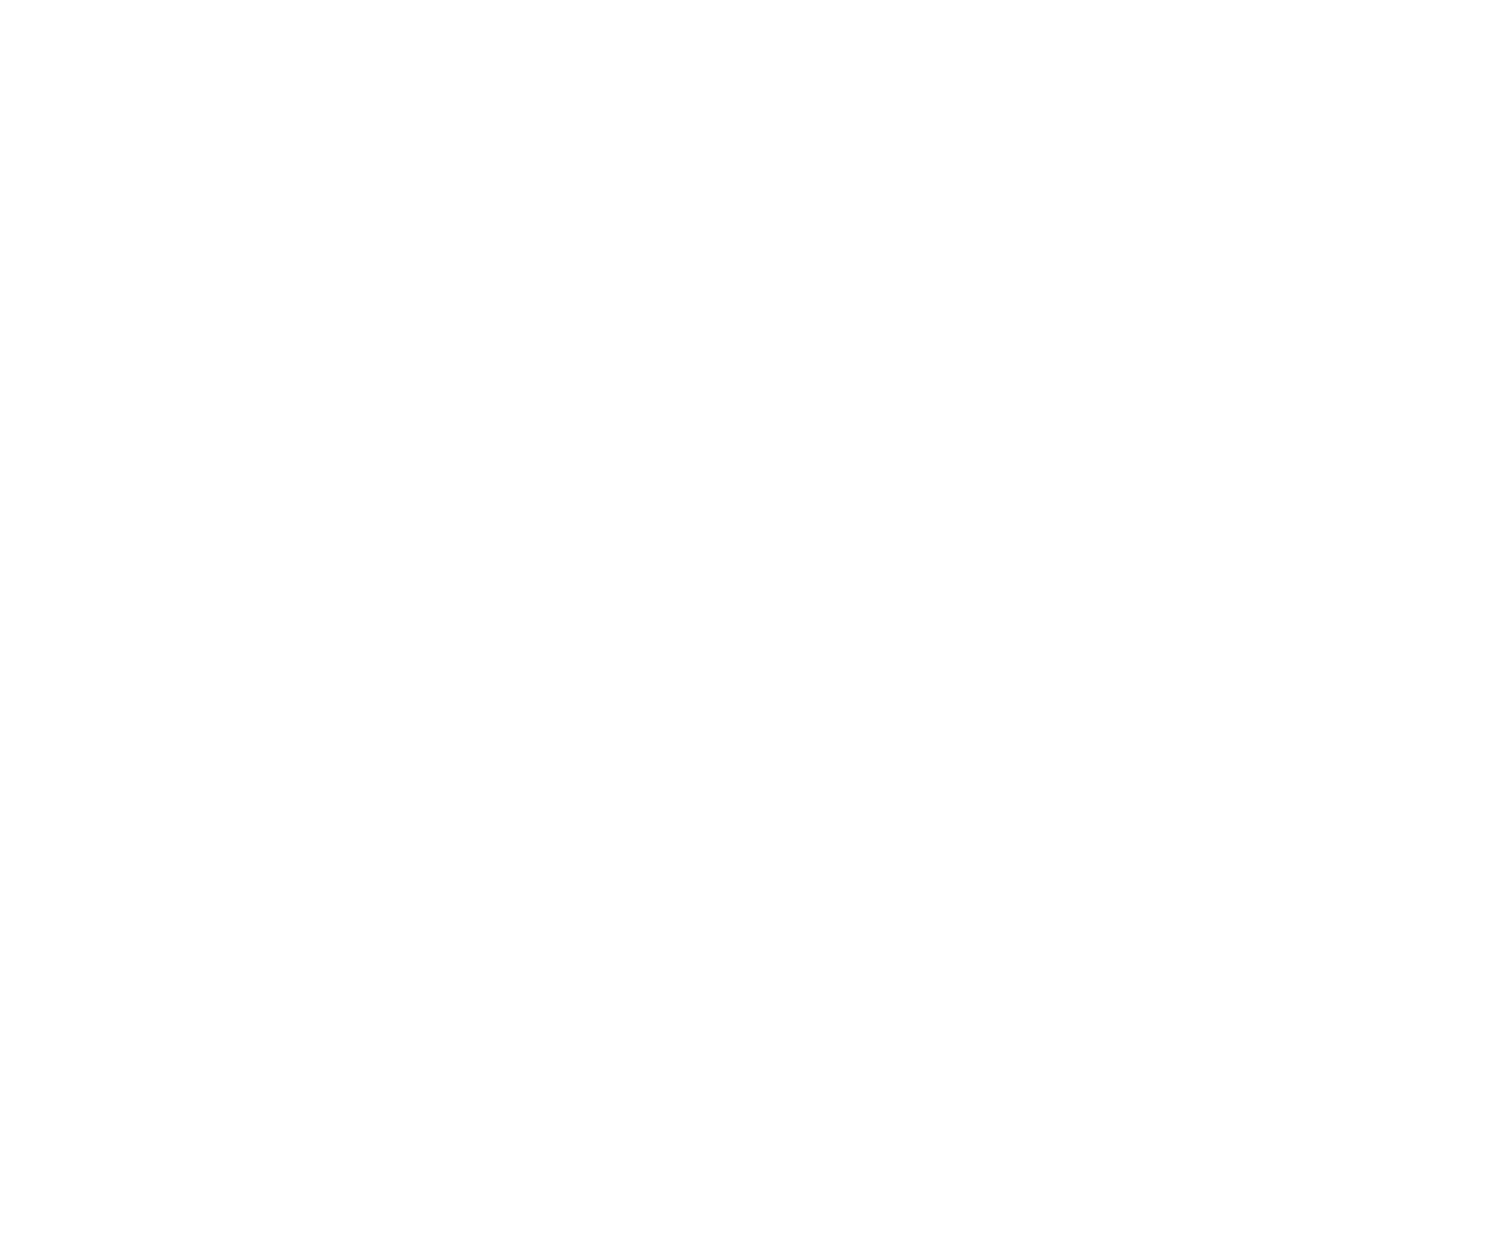 Alex King - Multimedia Journalist